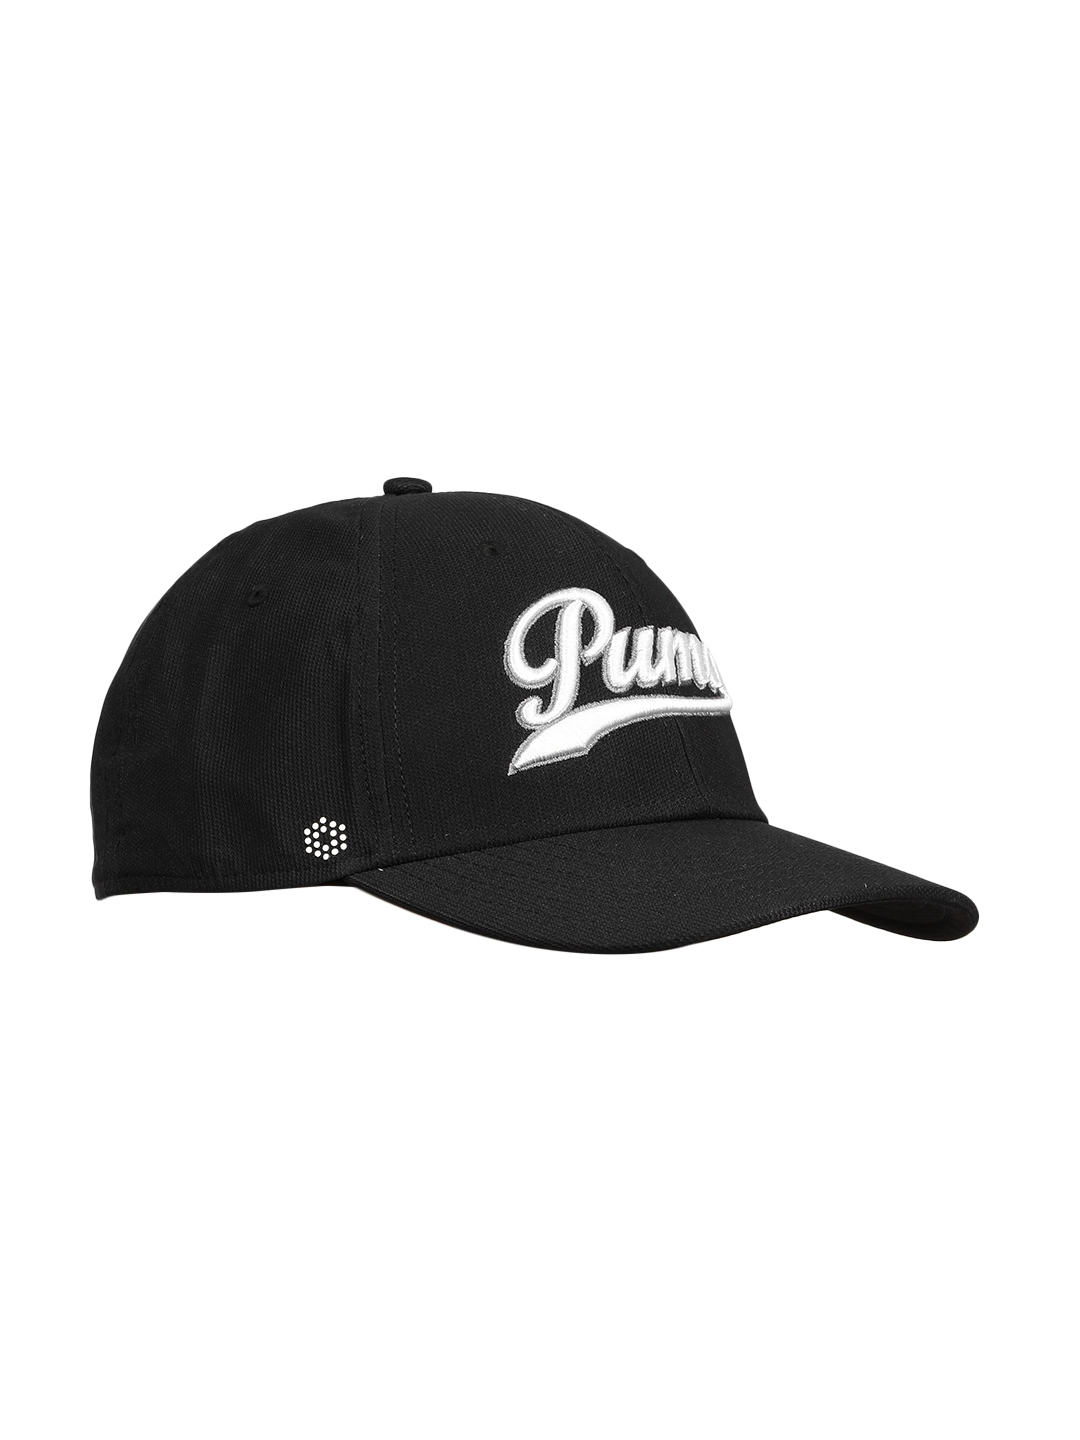 Buy Puma Men Black Solid Script Fitted Baseball Cap - Caps for Men ... 95414262fbe2